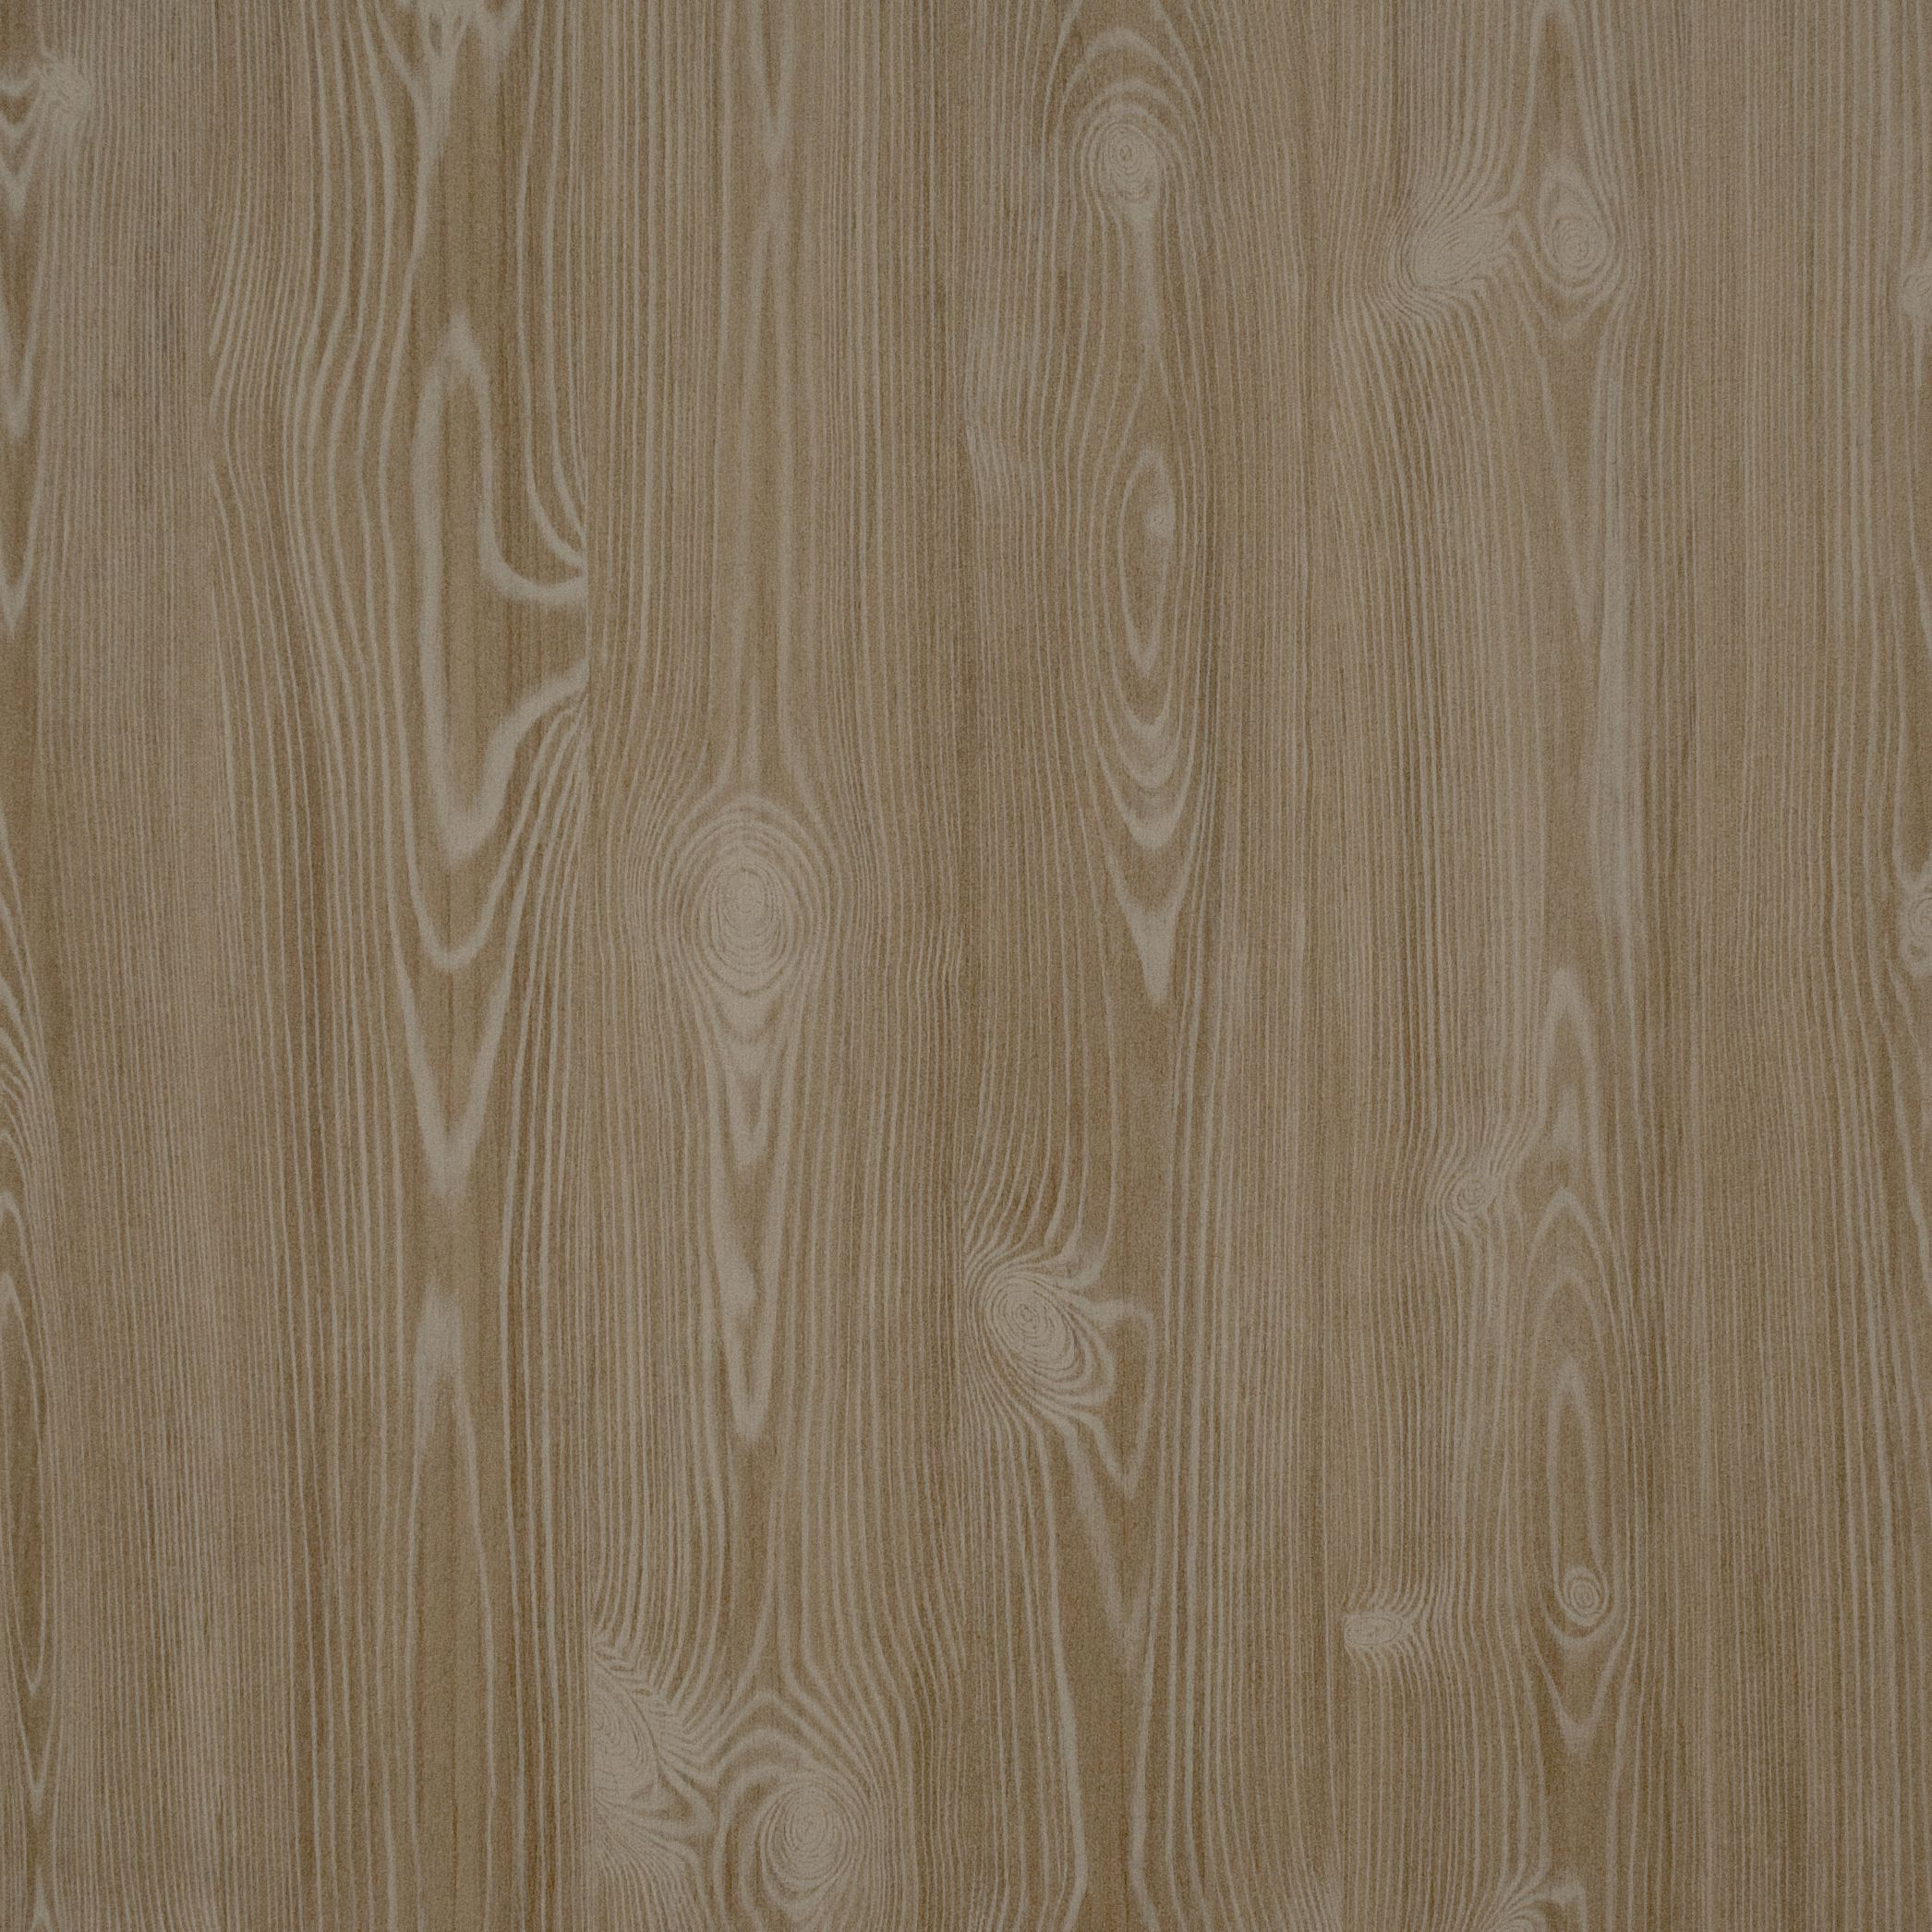 Behang Woods Wood Wallpaper Brown Hout Behang Bruin Layers By Edward